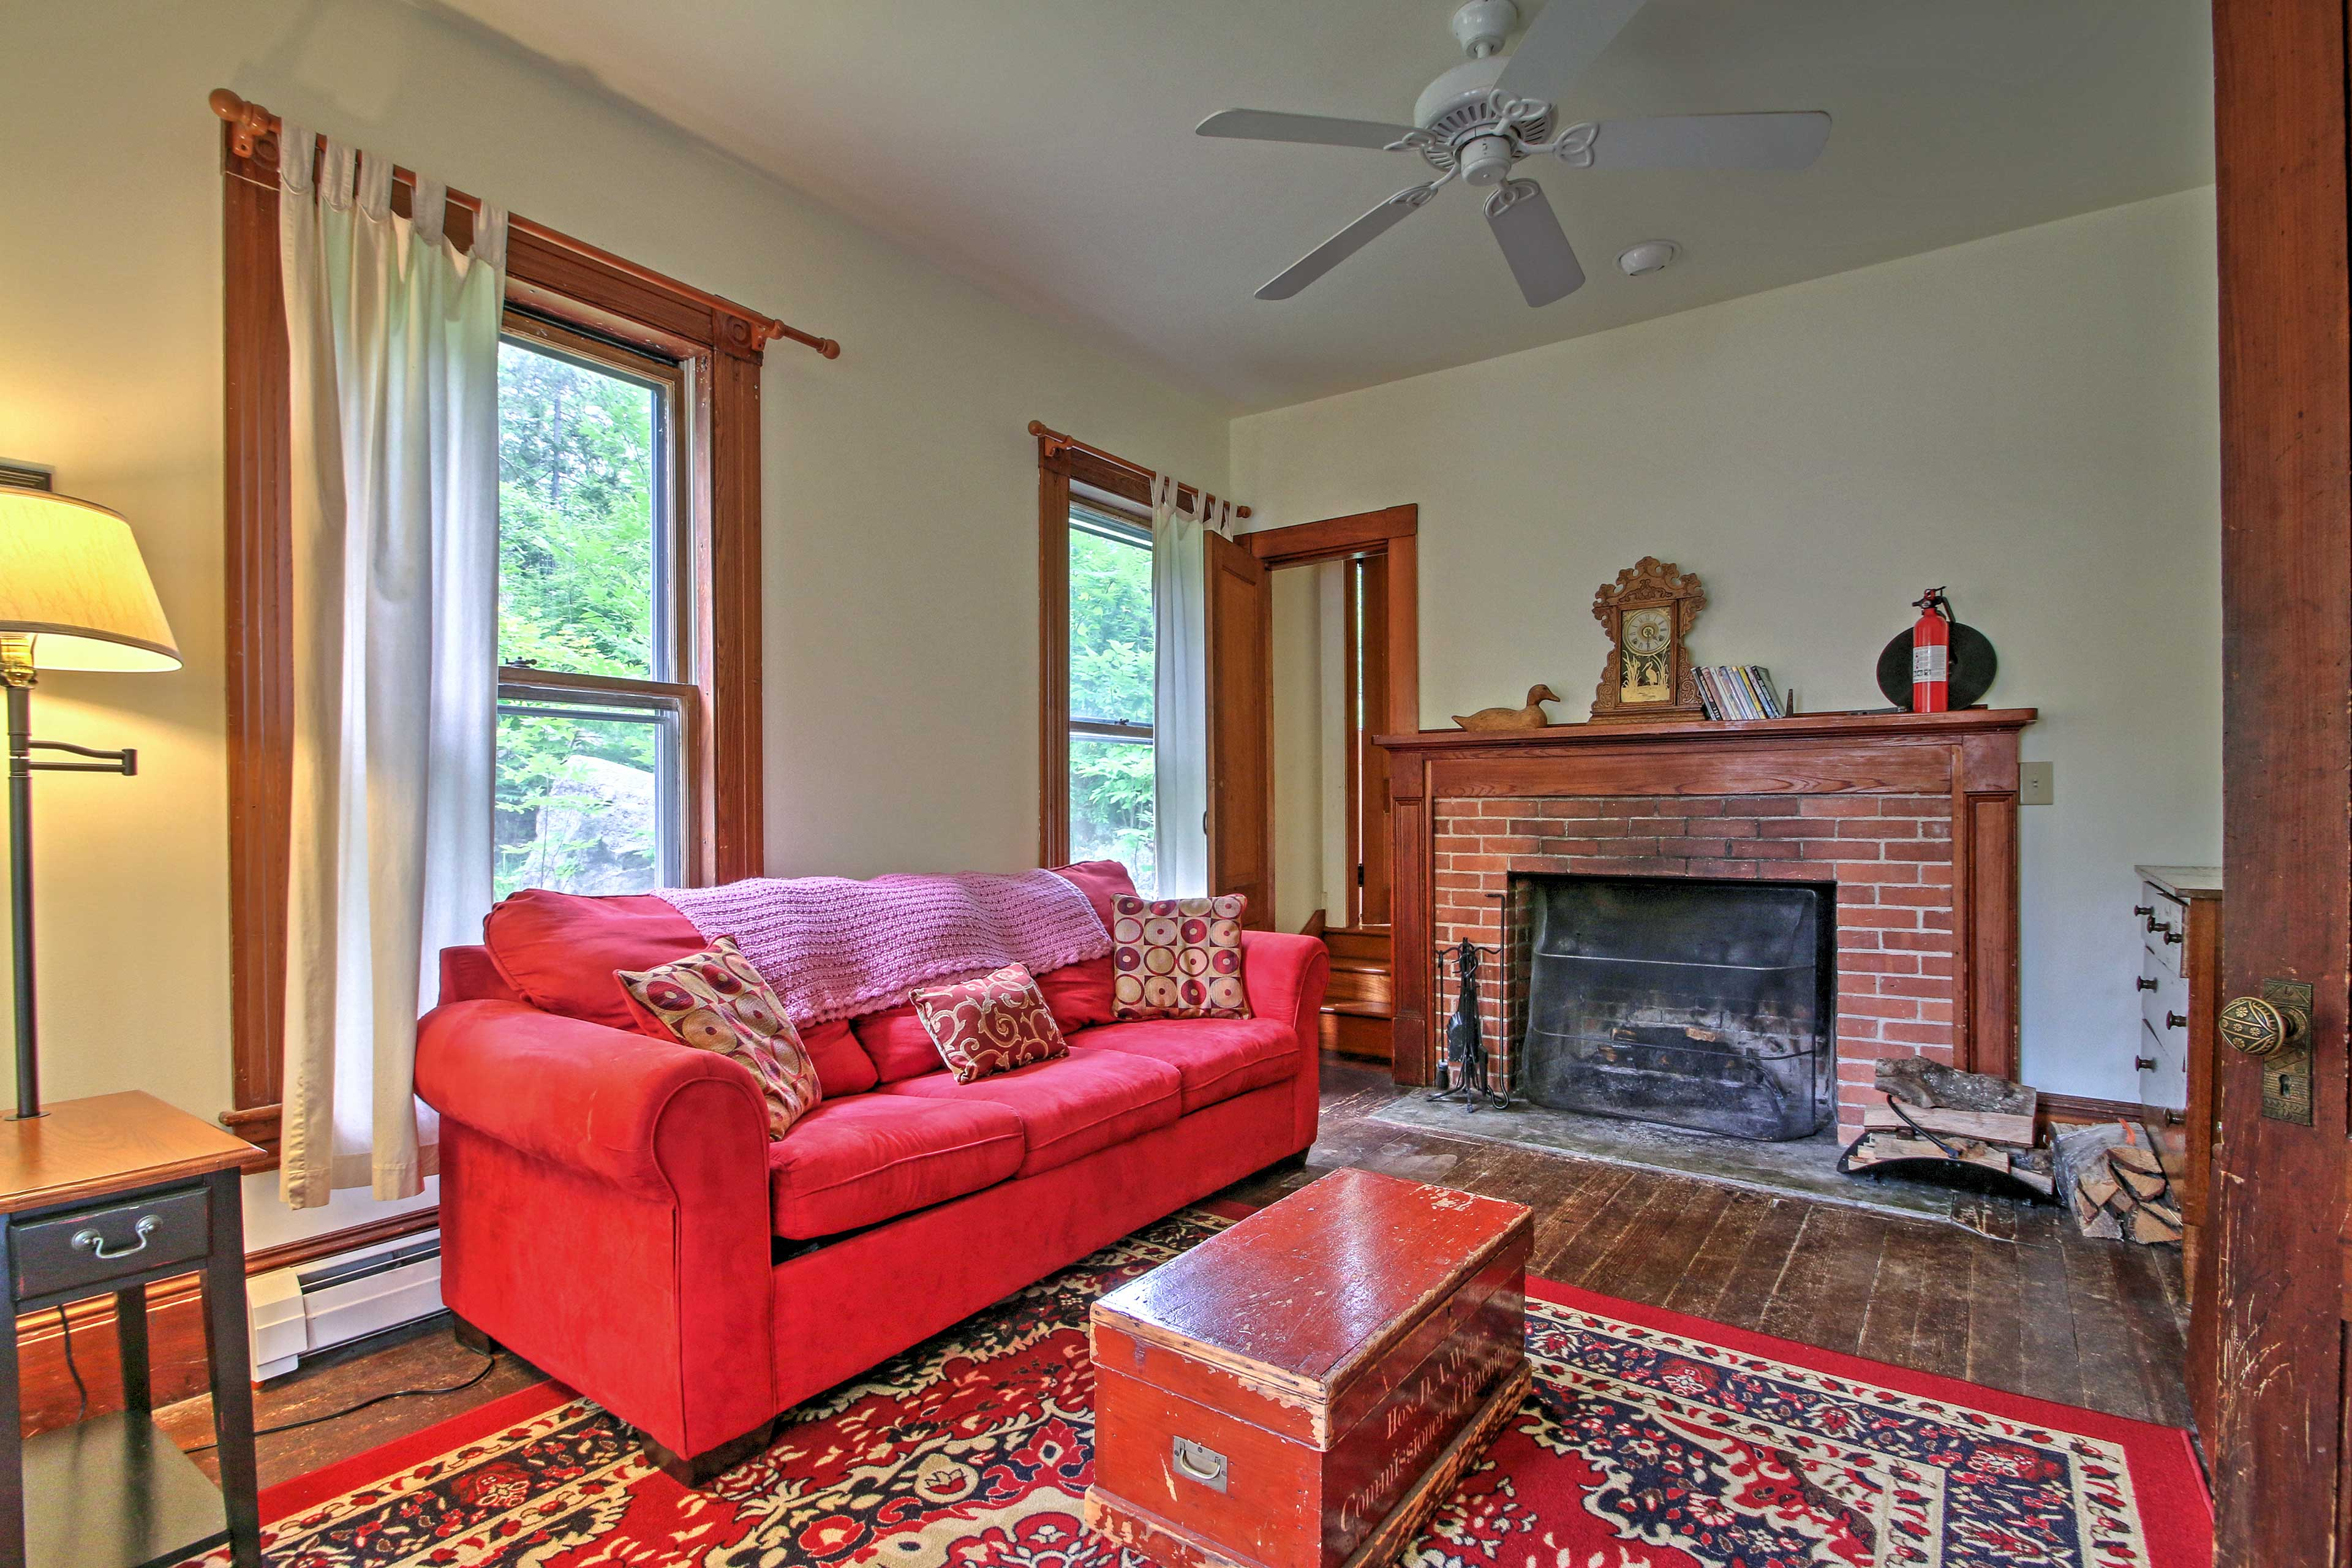 Relax by the fireplace in this lovely sitting room.